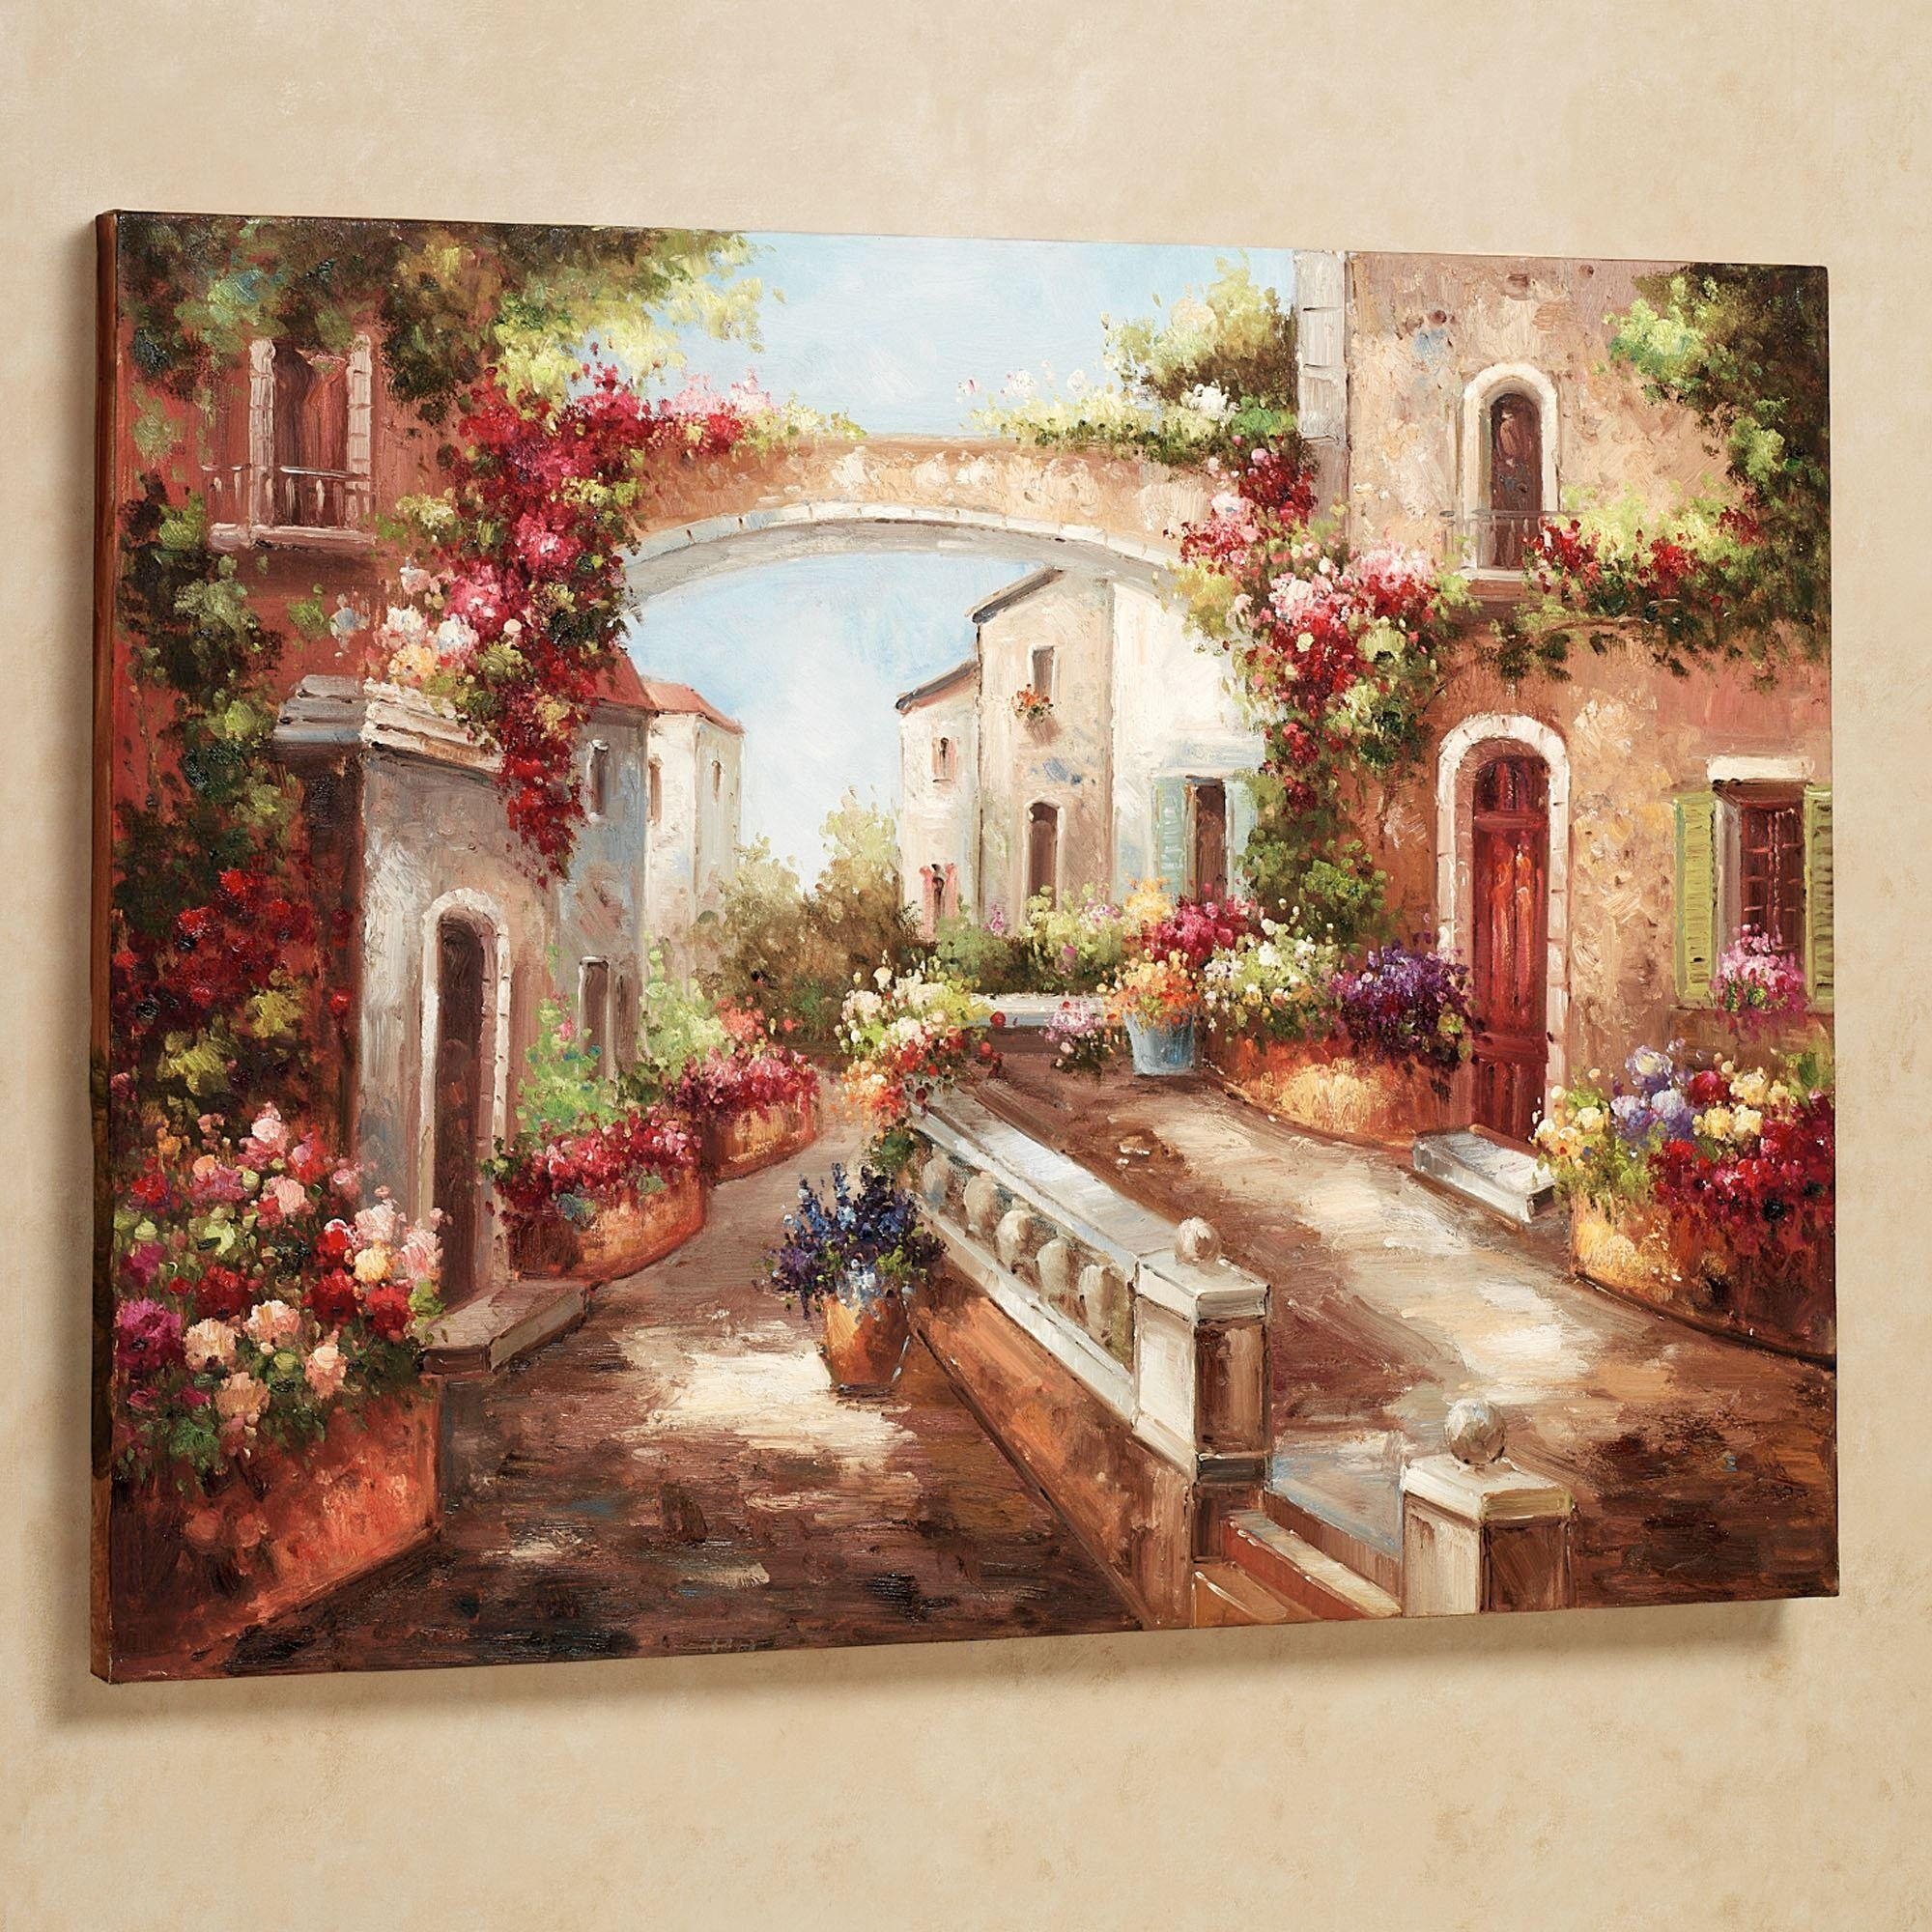 Zspmed Of Tuscan Wall Art Lovely For Your Home Decor Ideas With With Tuscan Wall Art Decor (View 5 of 20)